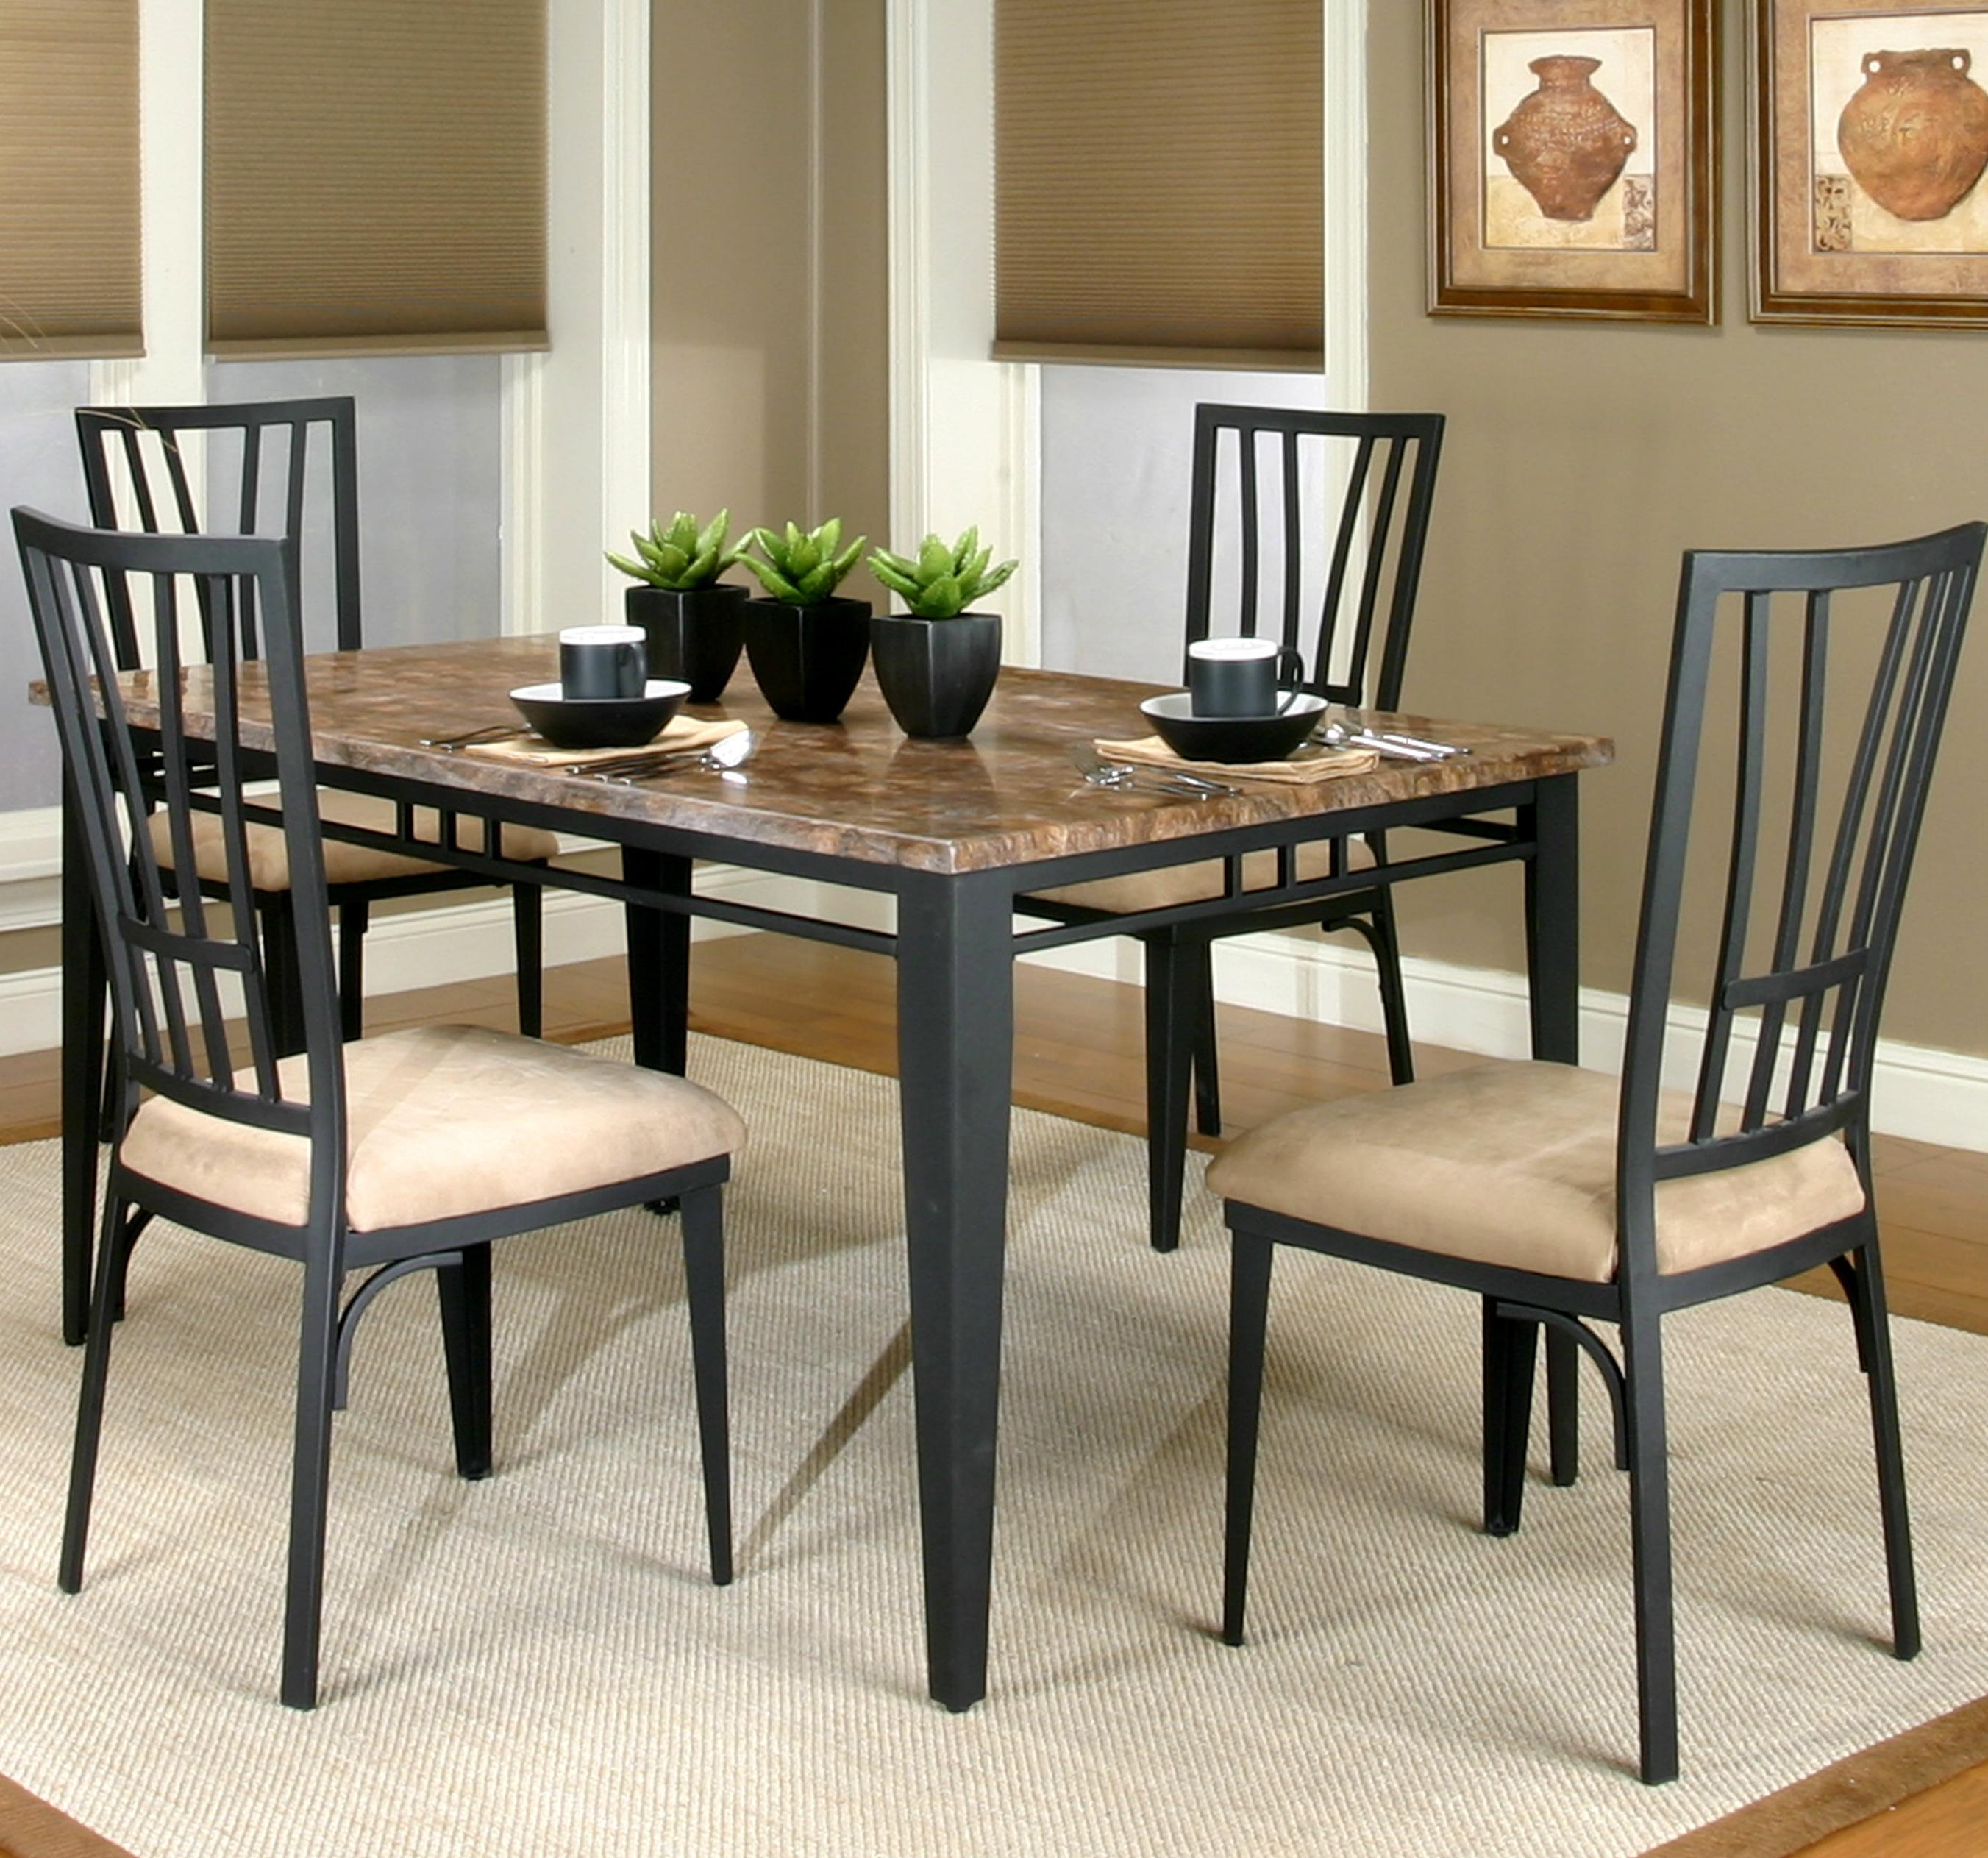 Cramco Trading Company - Lingo Table and Chair 5 Piece Set by Cramco, Inc at Corner Furniture